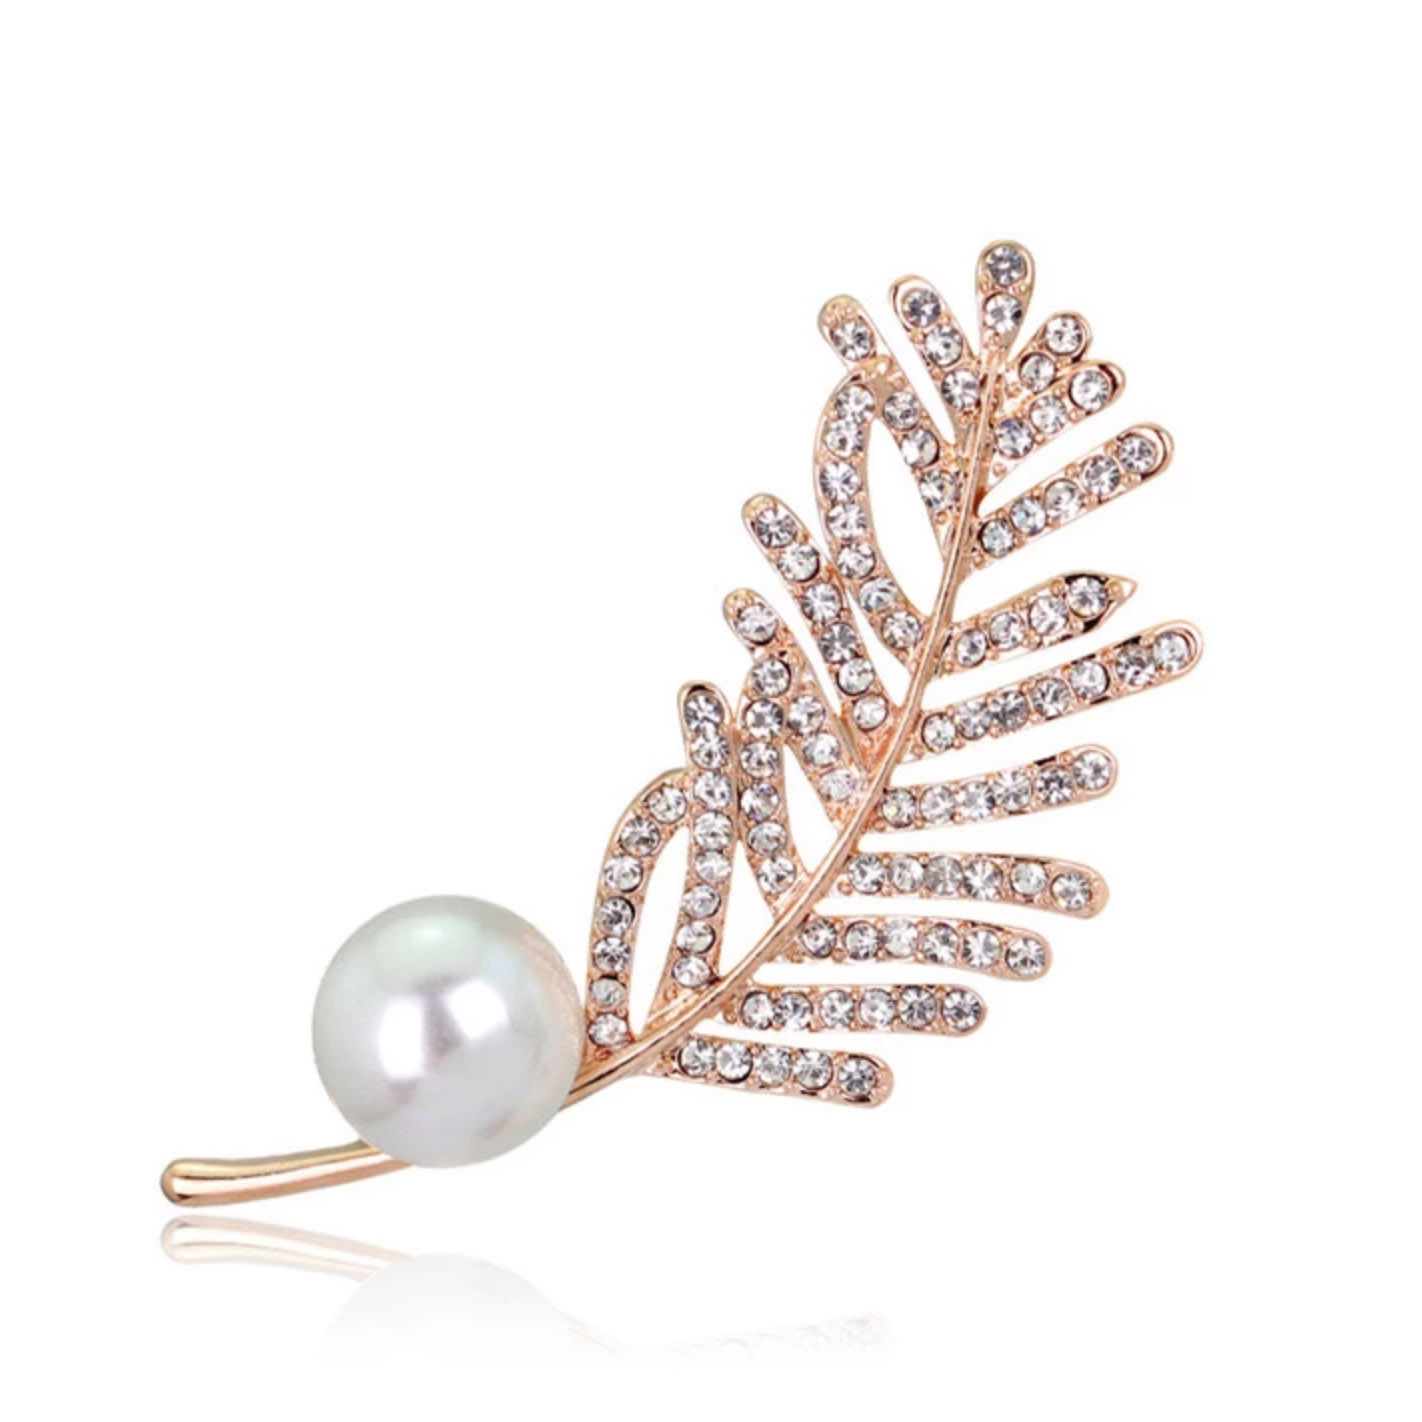 Rose gold feather crystal brooch with pearl